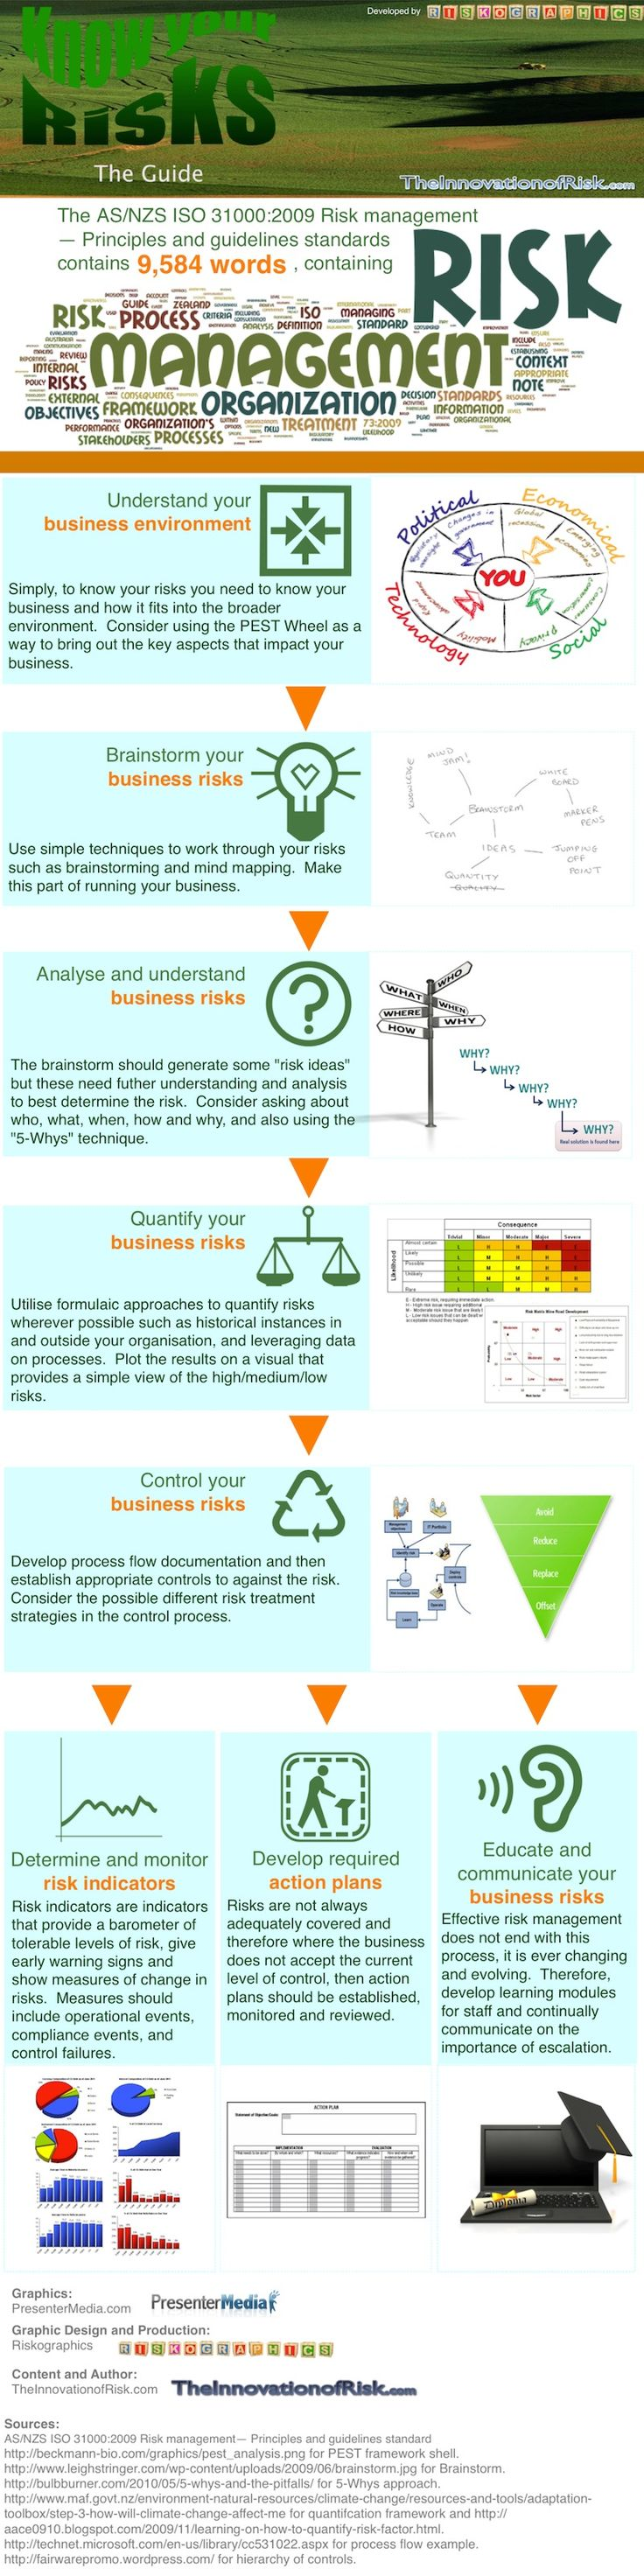 Know Your Risks - An Infographic Guide - Innovation of Risk